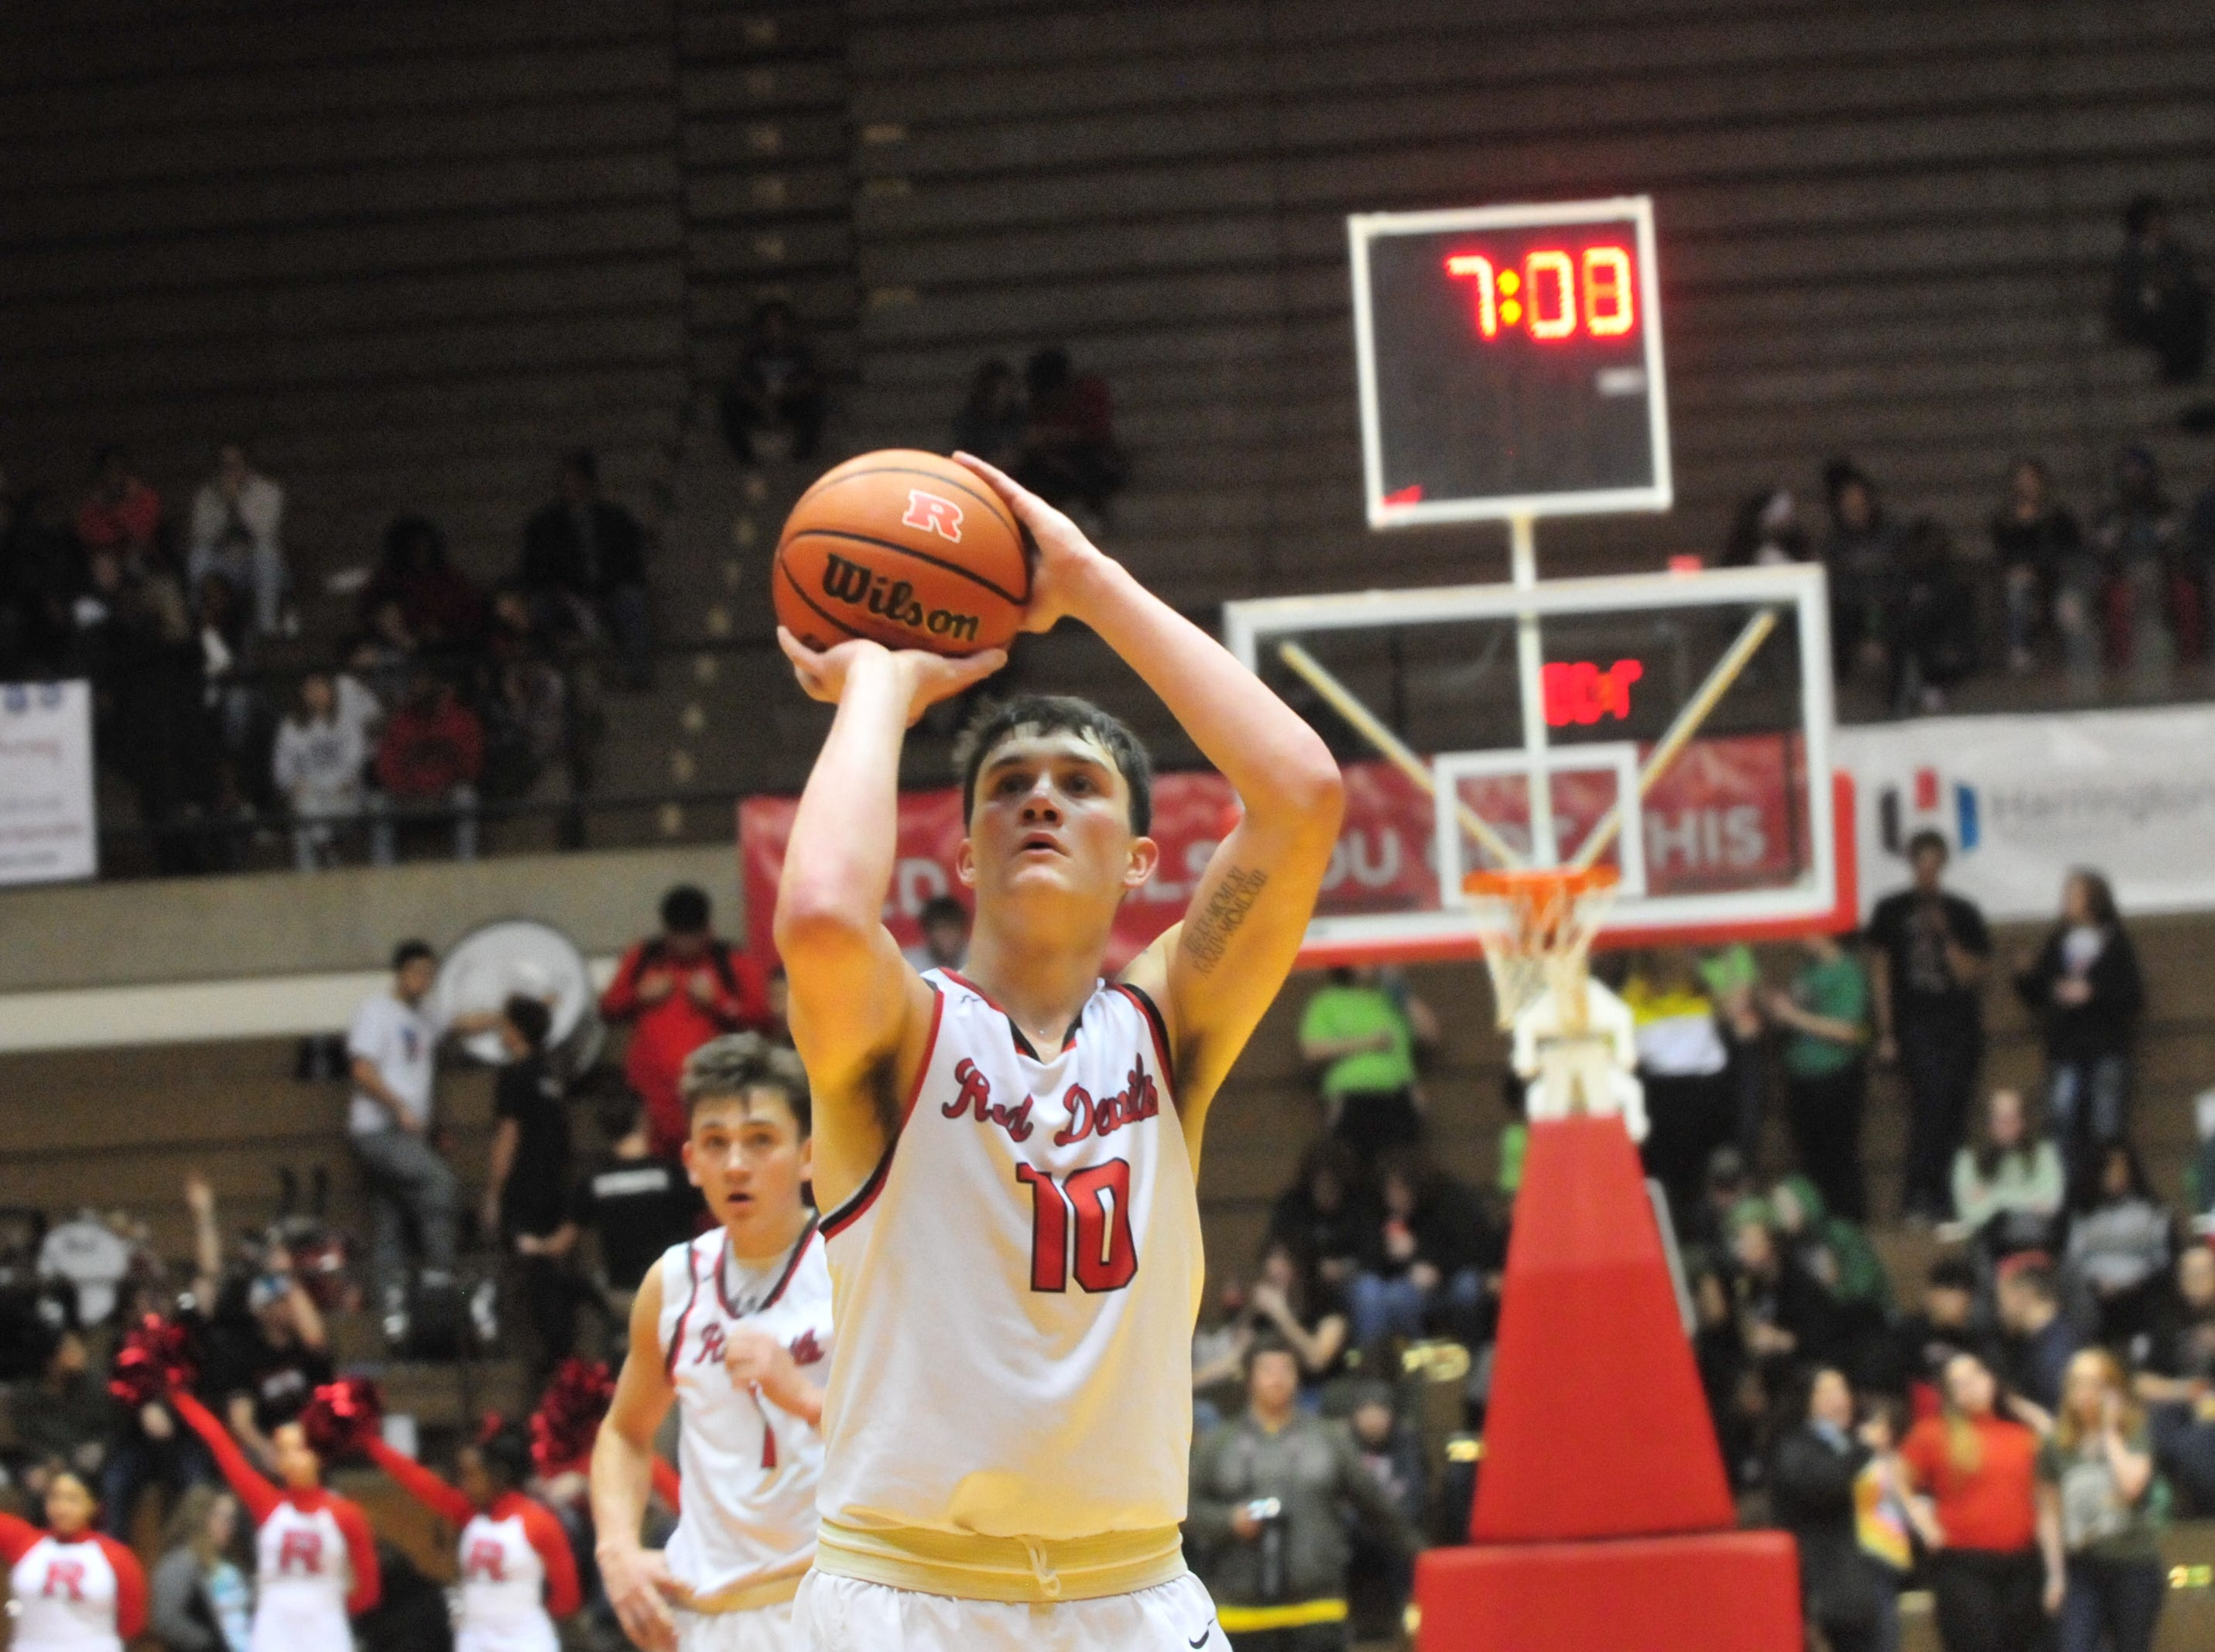 Richmond High School senior Lucas Kroft (10) shoots a free throw during Richmond's 73-48 boys basketball loss to New Castle Friday, Jan. 4, 2019 at Tiernan Center.